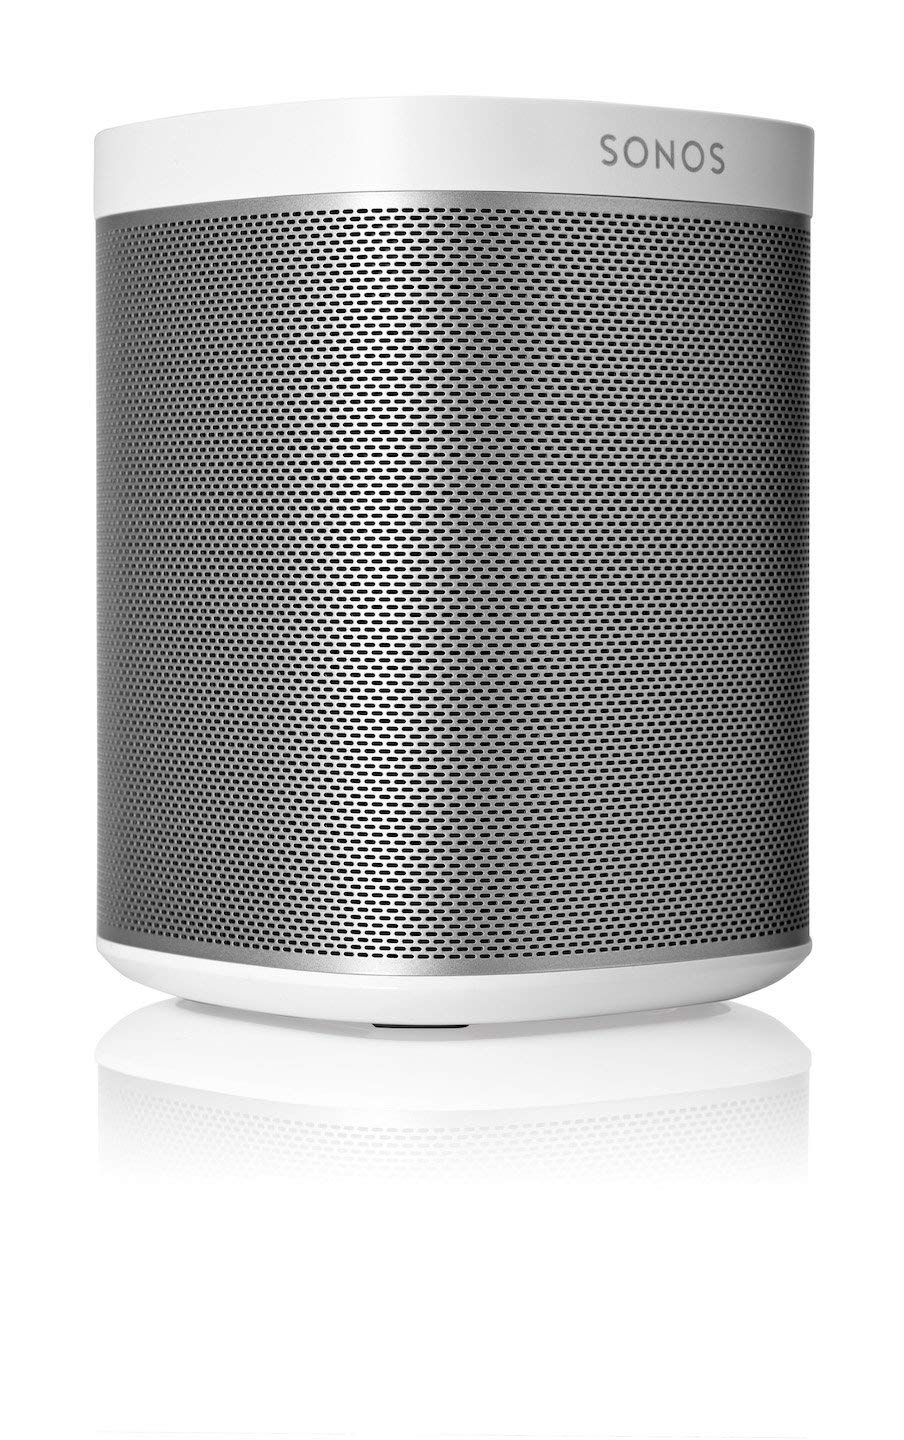 Compact Wireless Home Smart Speaker